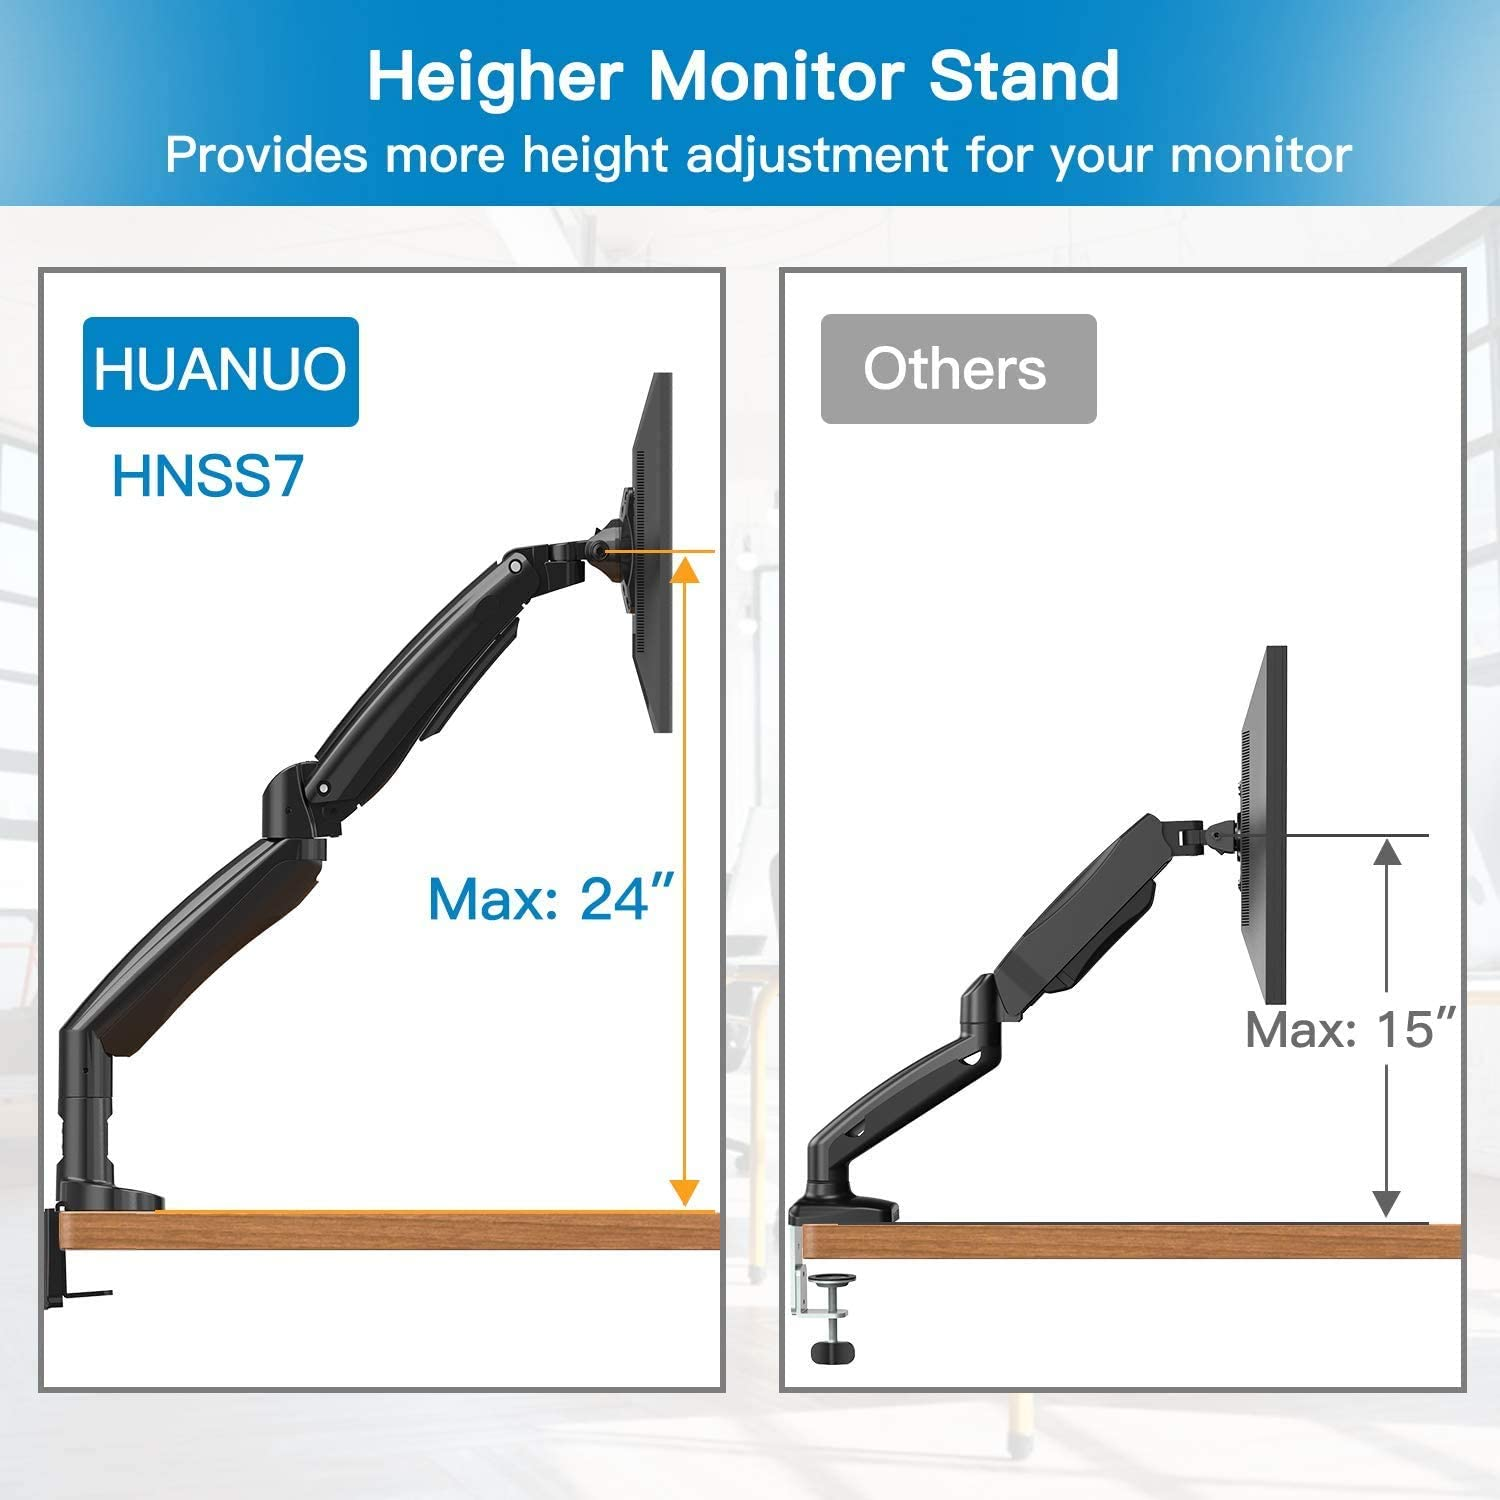 Long Single Arm Gas Spring Monitor Desk Mount for 22 to 35 Inch Computer Screens Height Adjustable VESA Bracket with Clamp or Grommet Mounting Base Holds 6.6 to 19.8 lbs Single Monitor Mount Stand